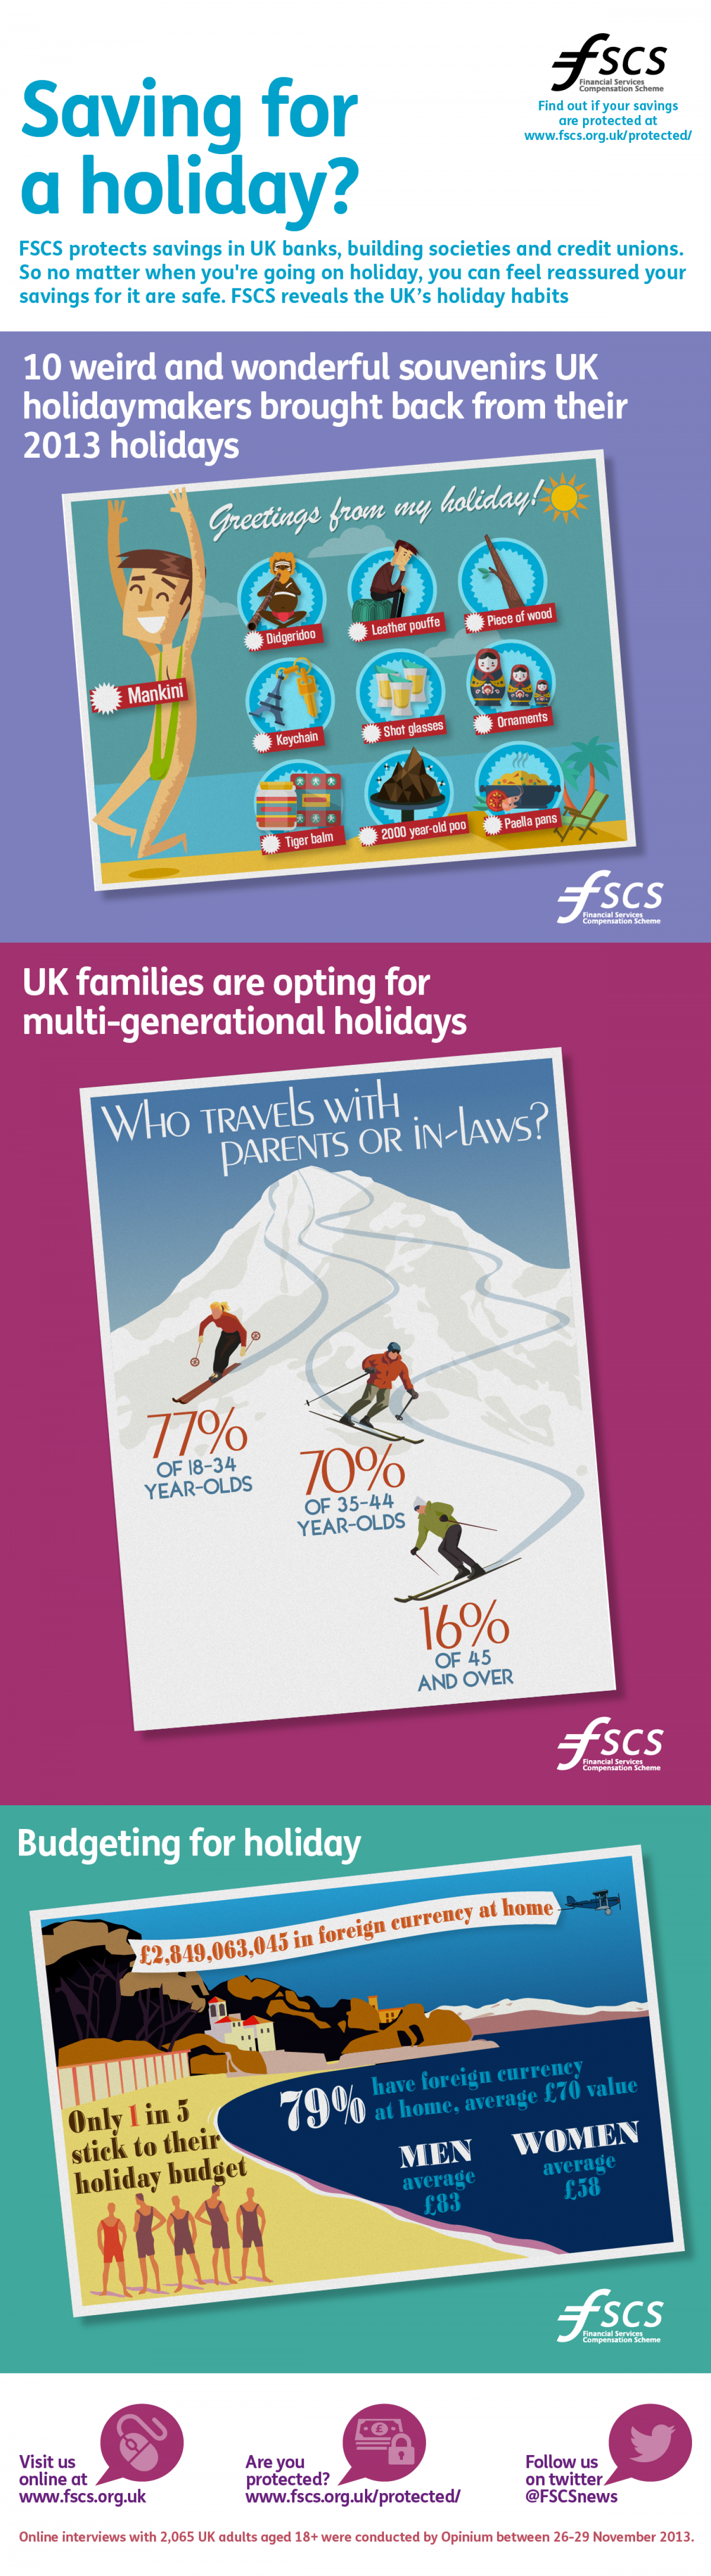 Saving for a holiday? Infographic